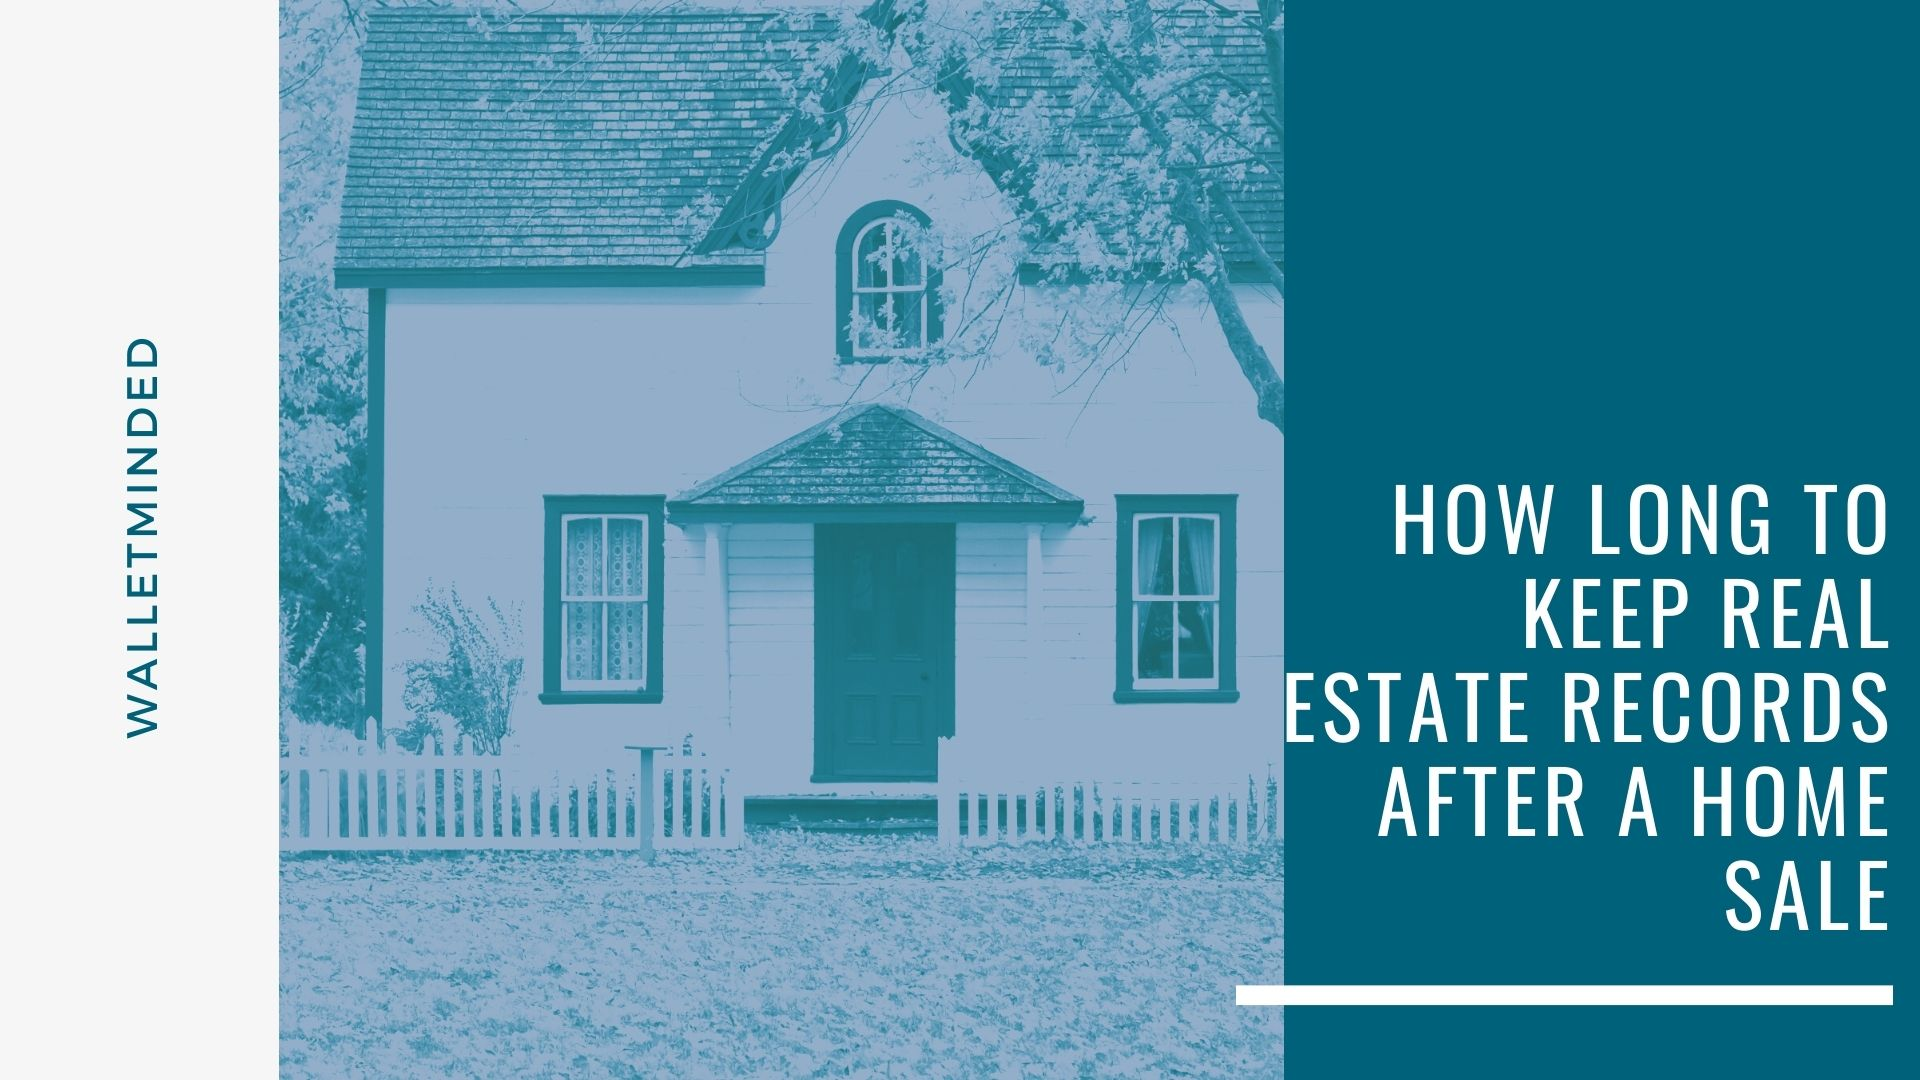 How Long to Keep Real Estate Records After a Home Sale